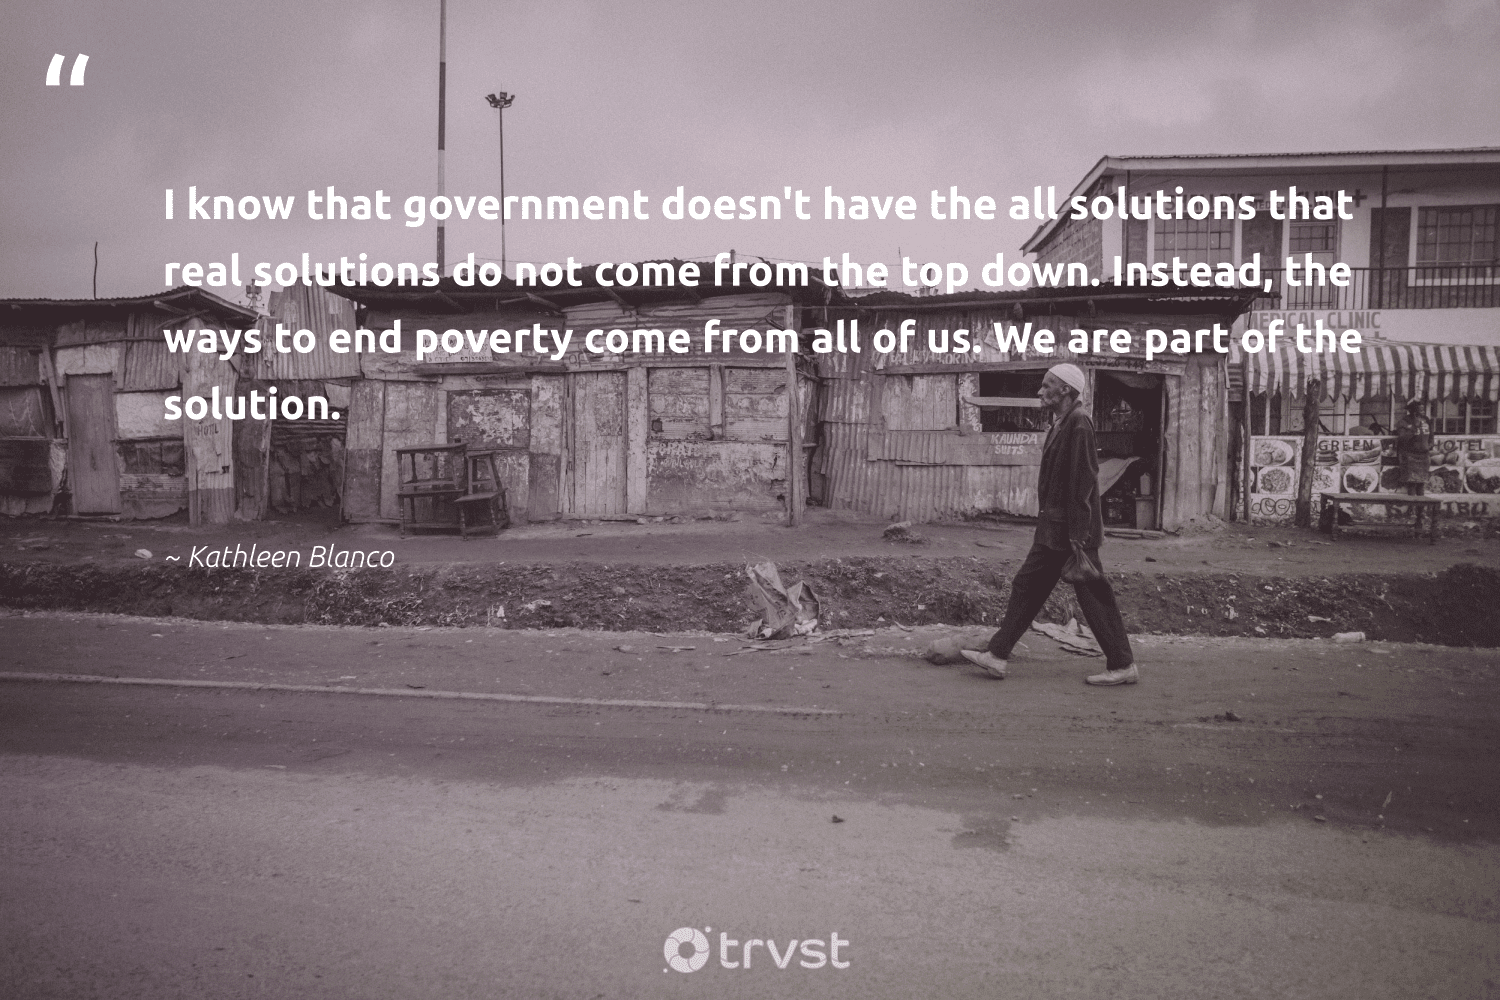 """""""I know that government doesn't have the all solutions that real solutions do not come from the top down. Instead, the ways to end poverty come from all of us. We are part of the solution.""""  - Kathleen Blanco #trvst #quotes #poverty #endpoverty #weareallone #inclusion #impact #makeadifference #equalopportunity #gogreen #sustainablefutures #equalrights"""